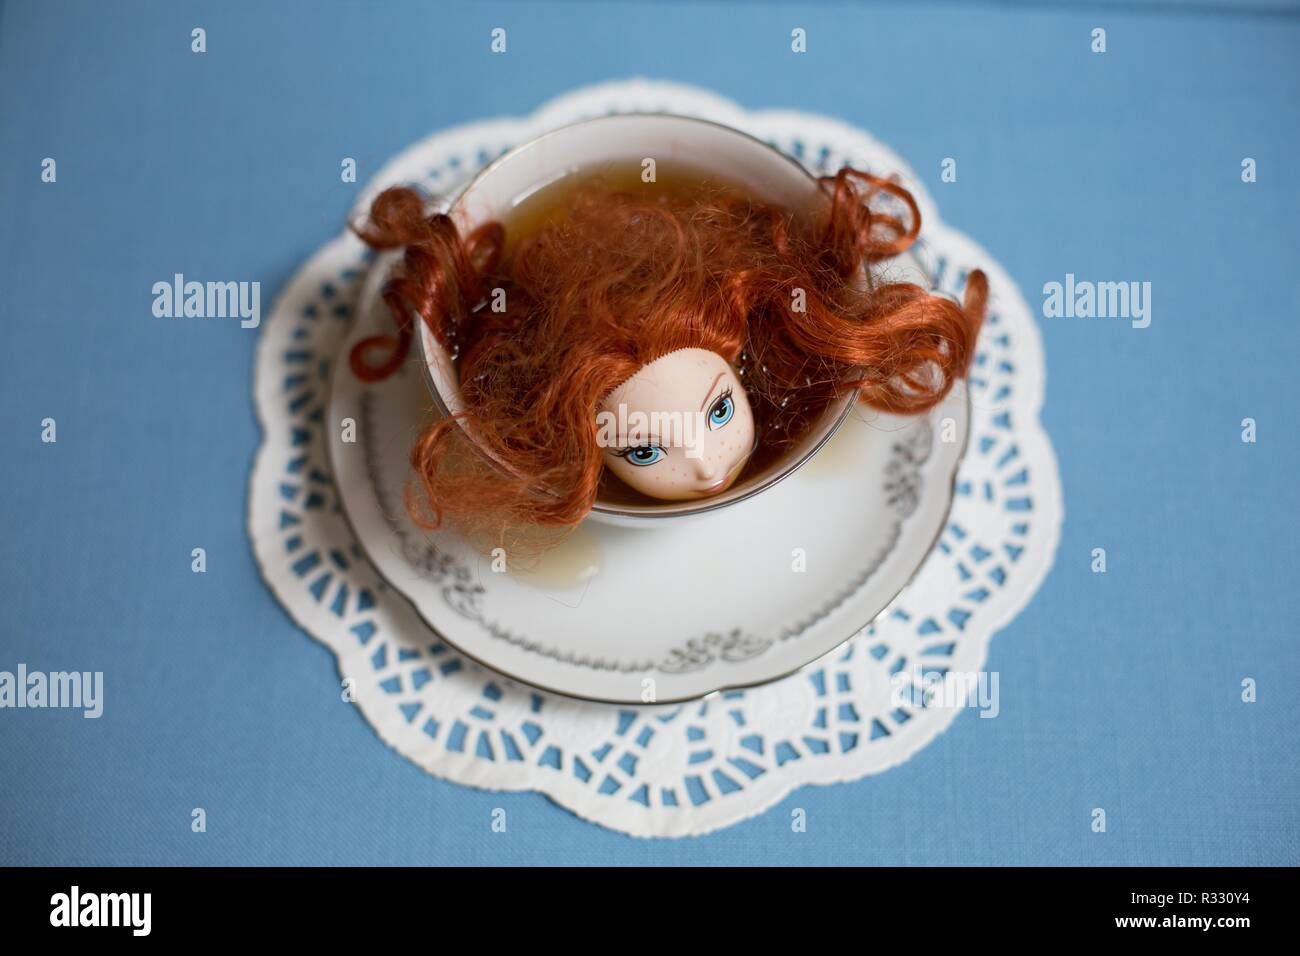 Surreal image of red-headed doll in a cup of tea. - Stock Image